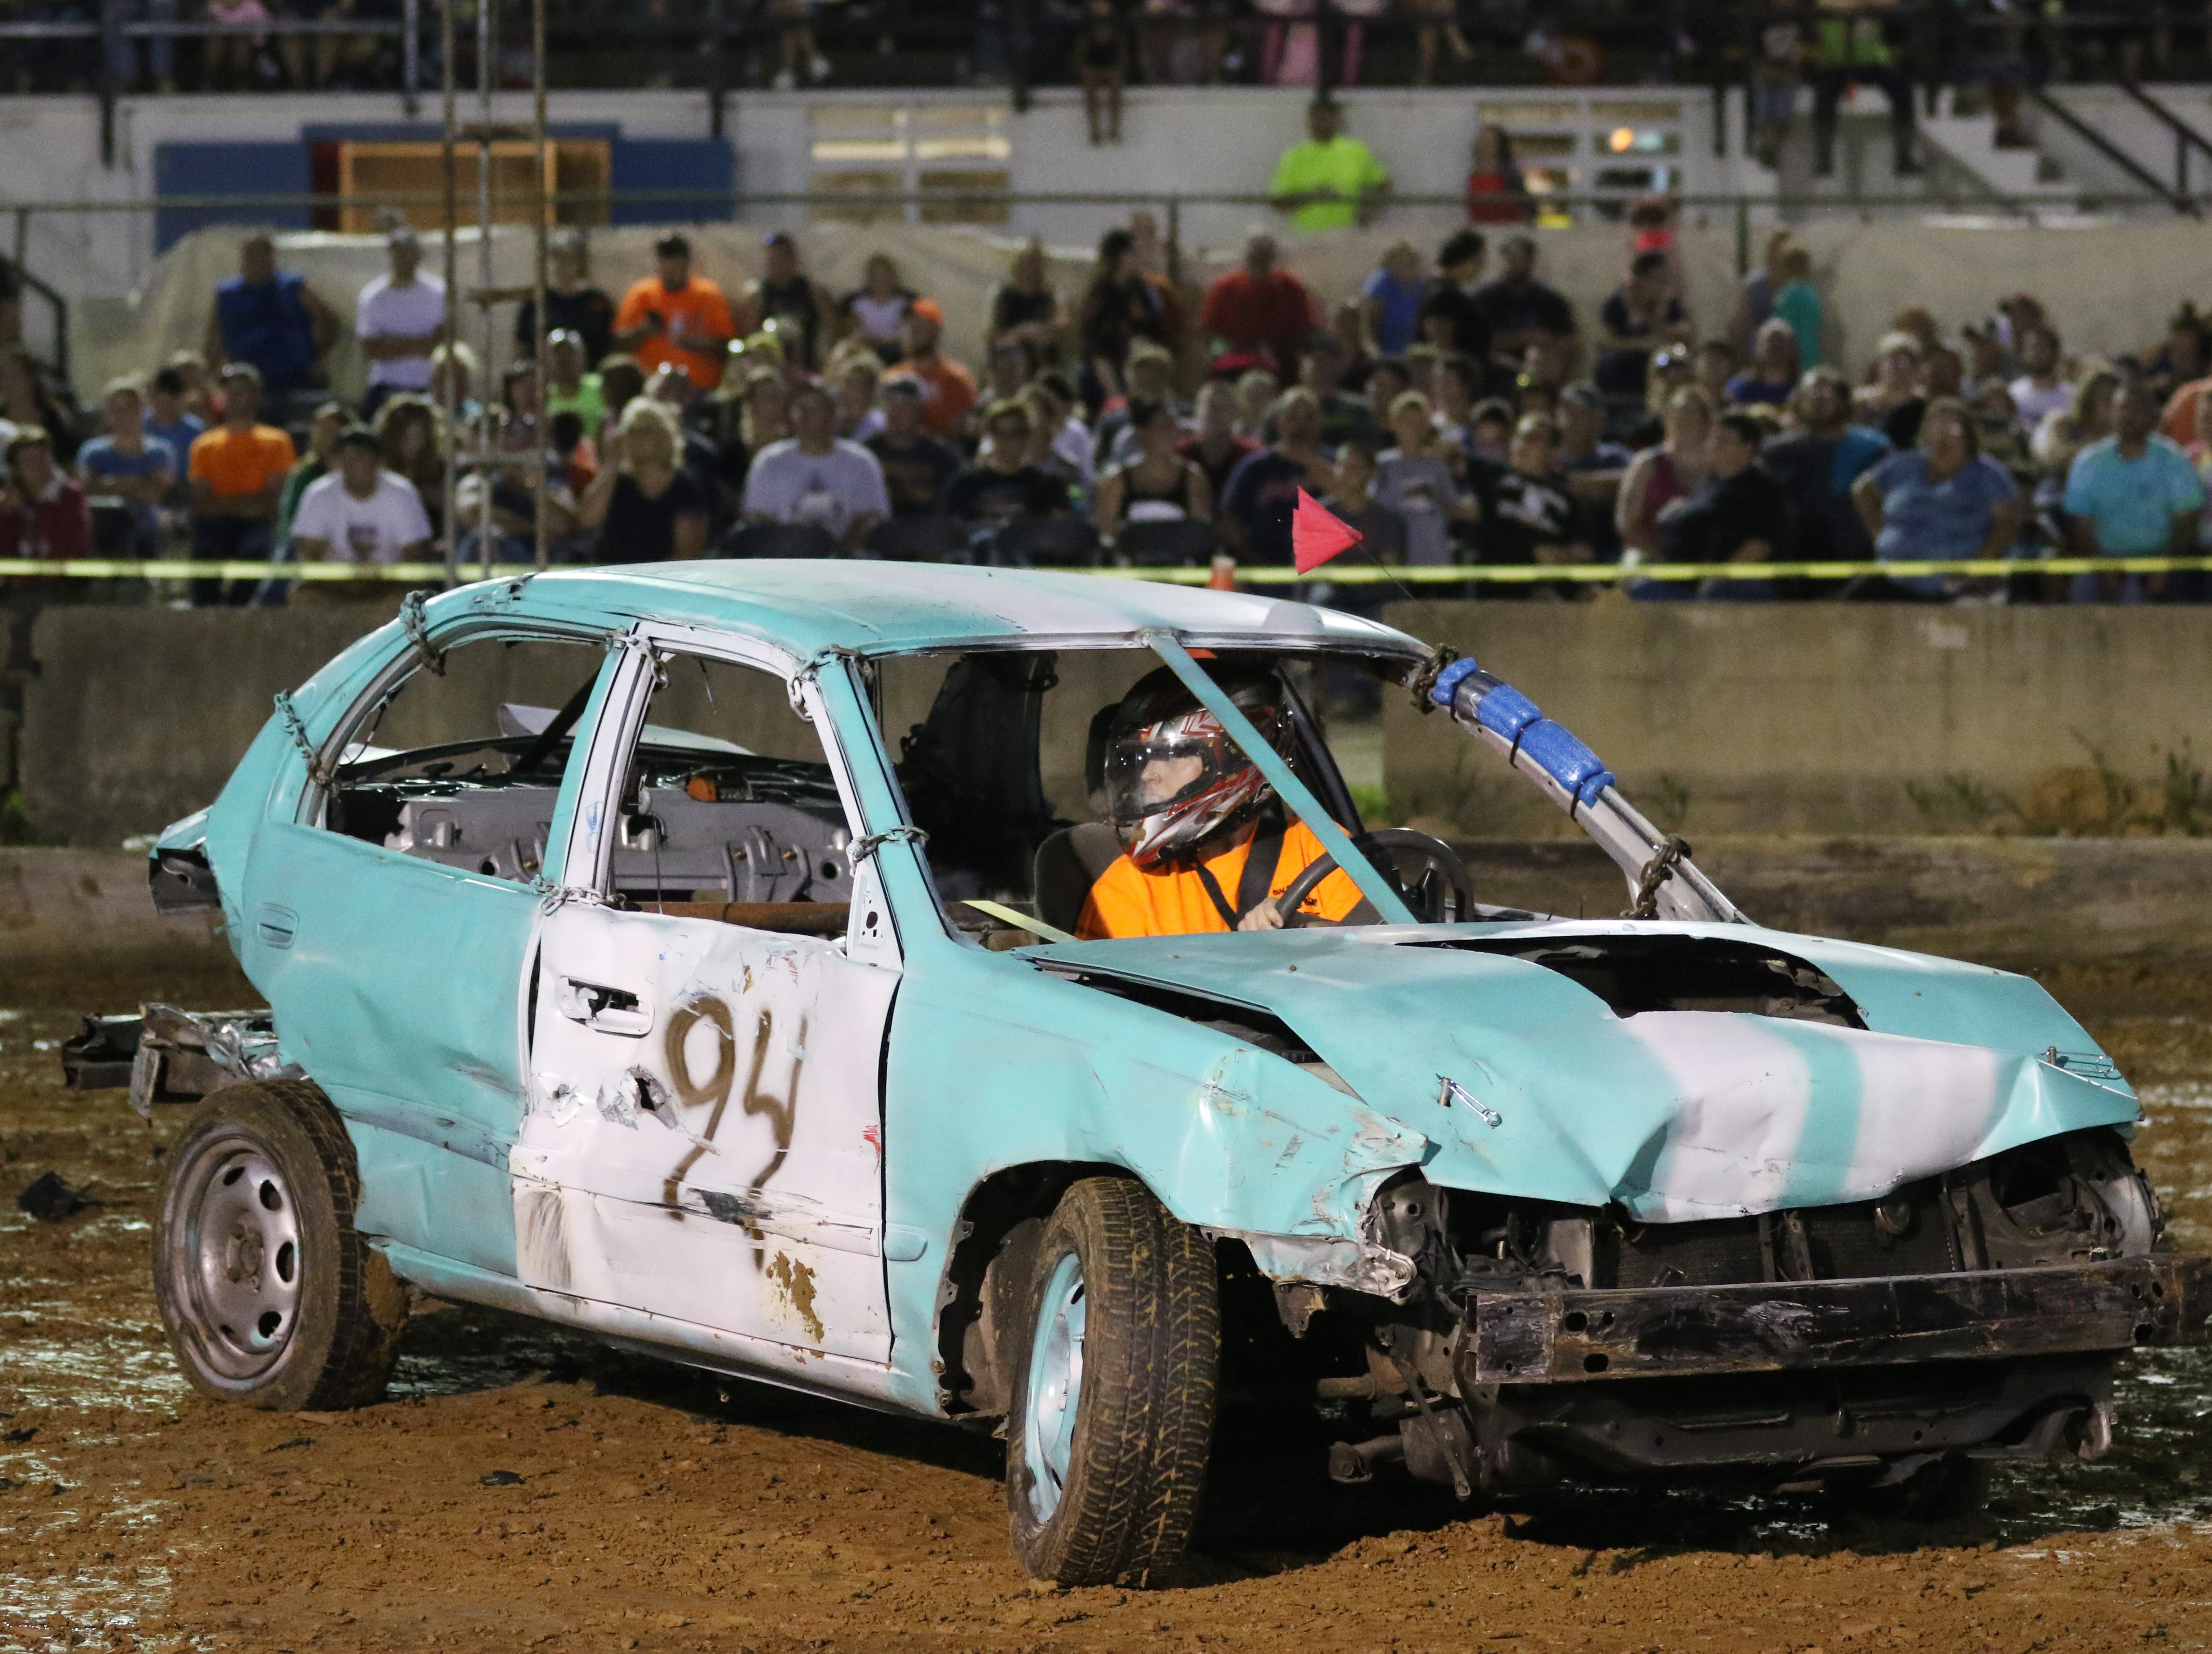 Taylor Ellis looks for someone to hit during the Sarge and Sons Demolition Derby at the Muskingum County Fair on Tuesday.